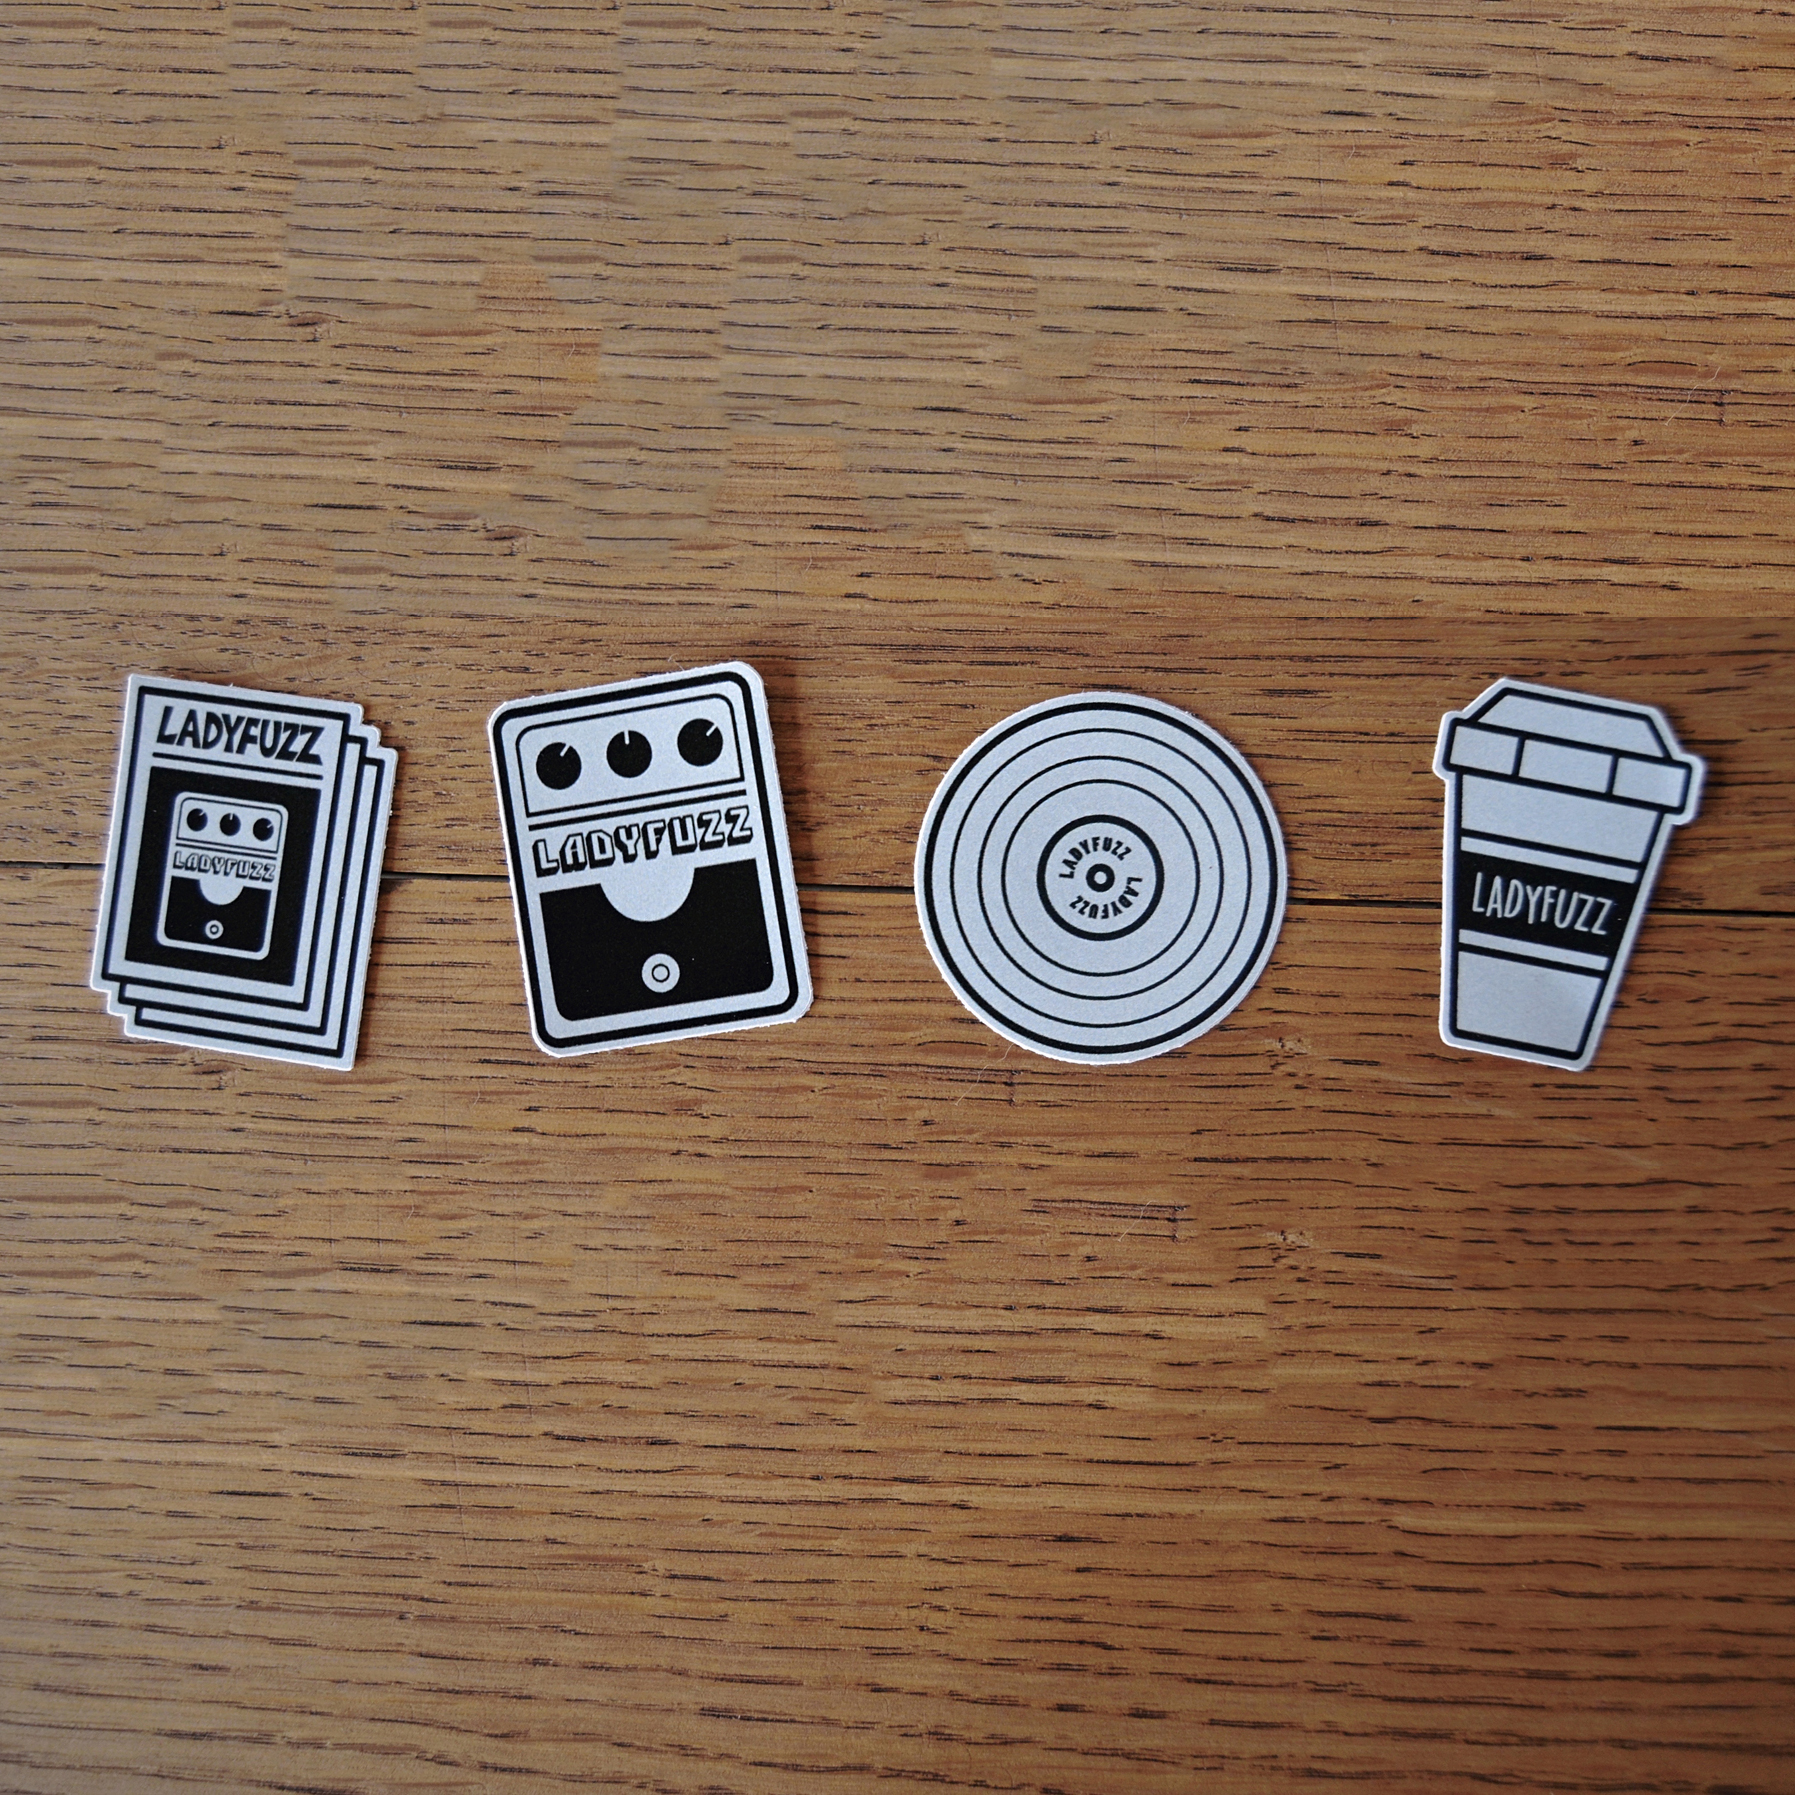 Ladyfuzz Sticker Set